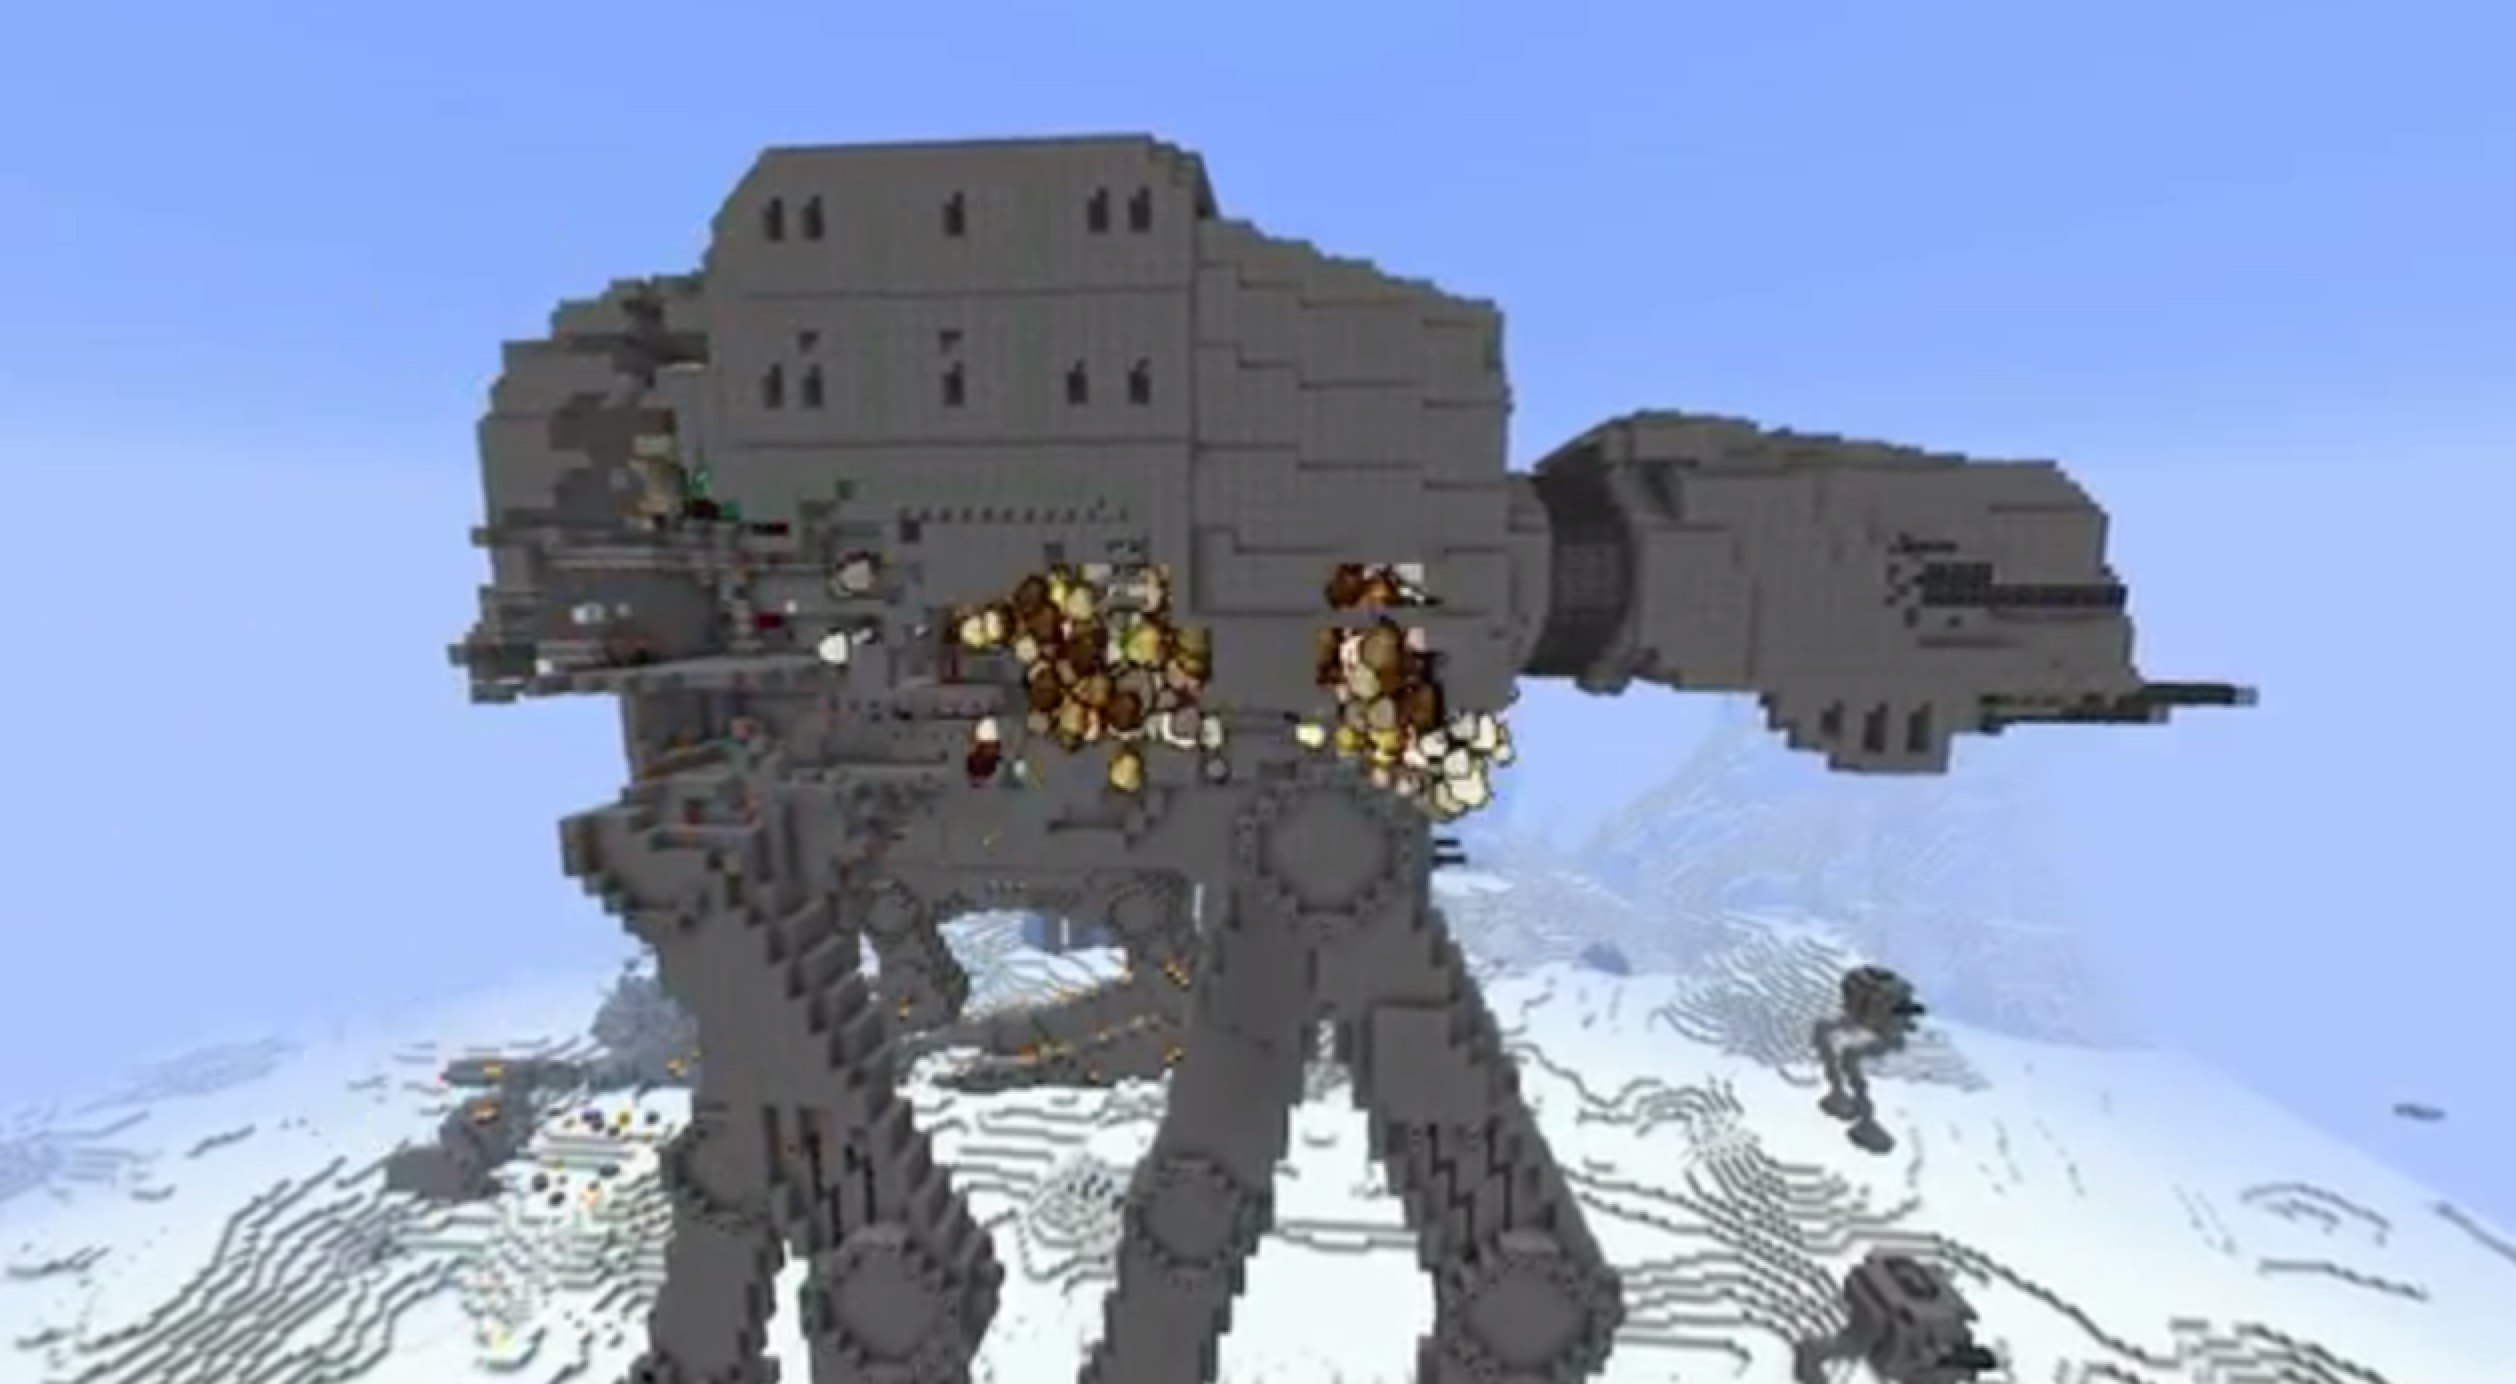 Minecraft And Star Wars New Map To Download - Coole maps fur minecraft zum downloaden